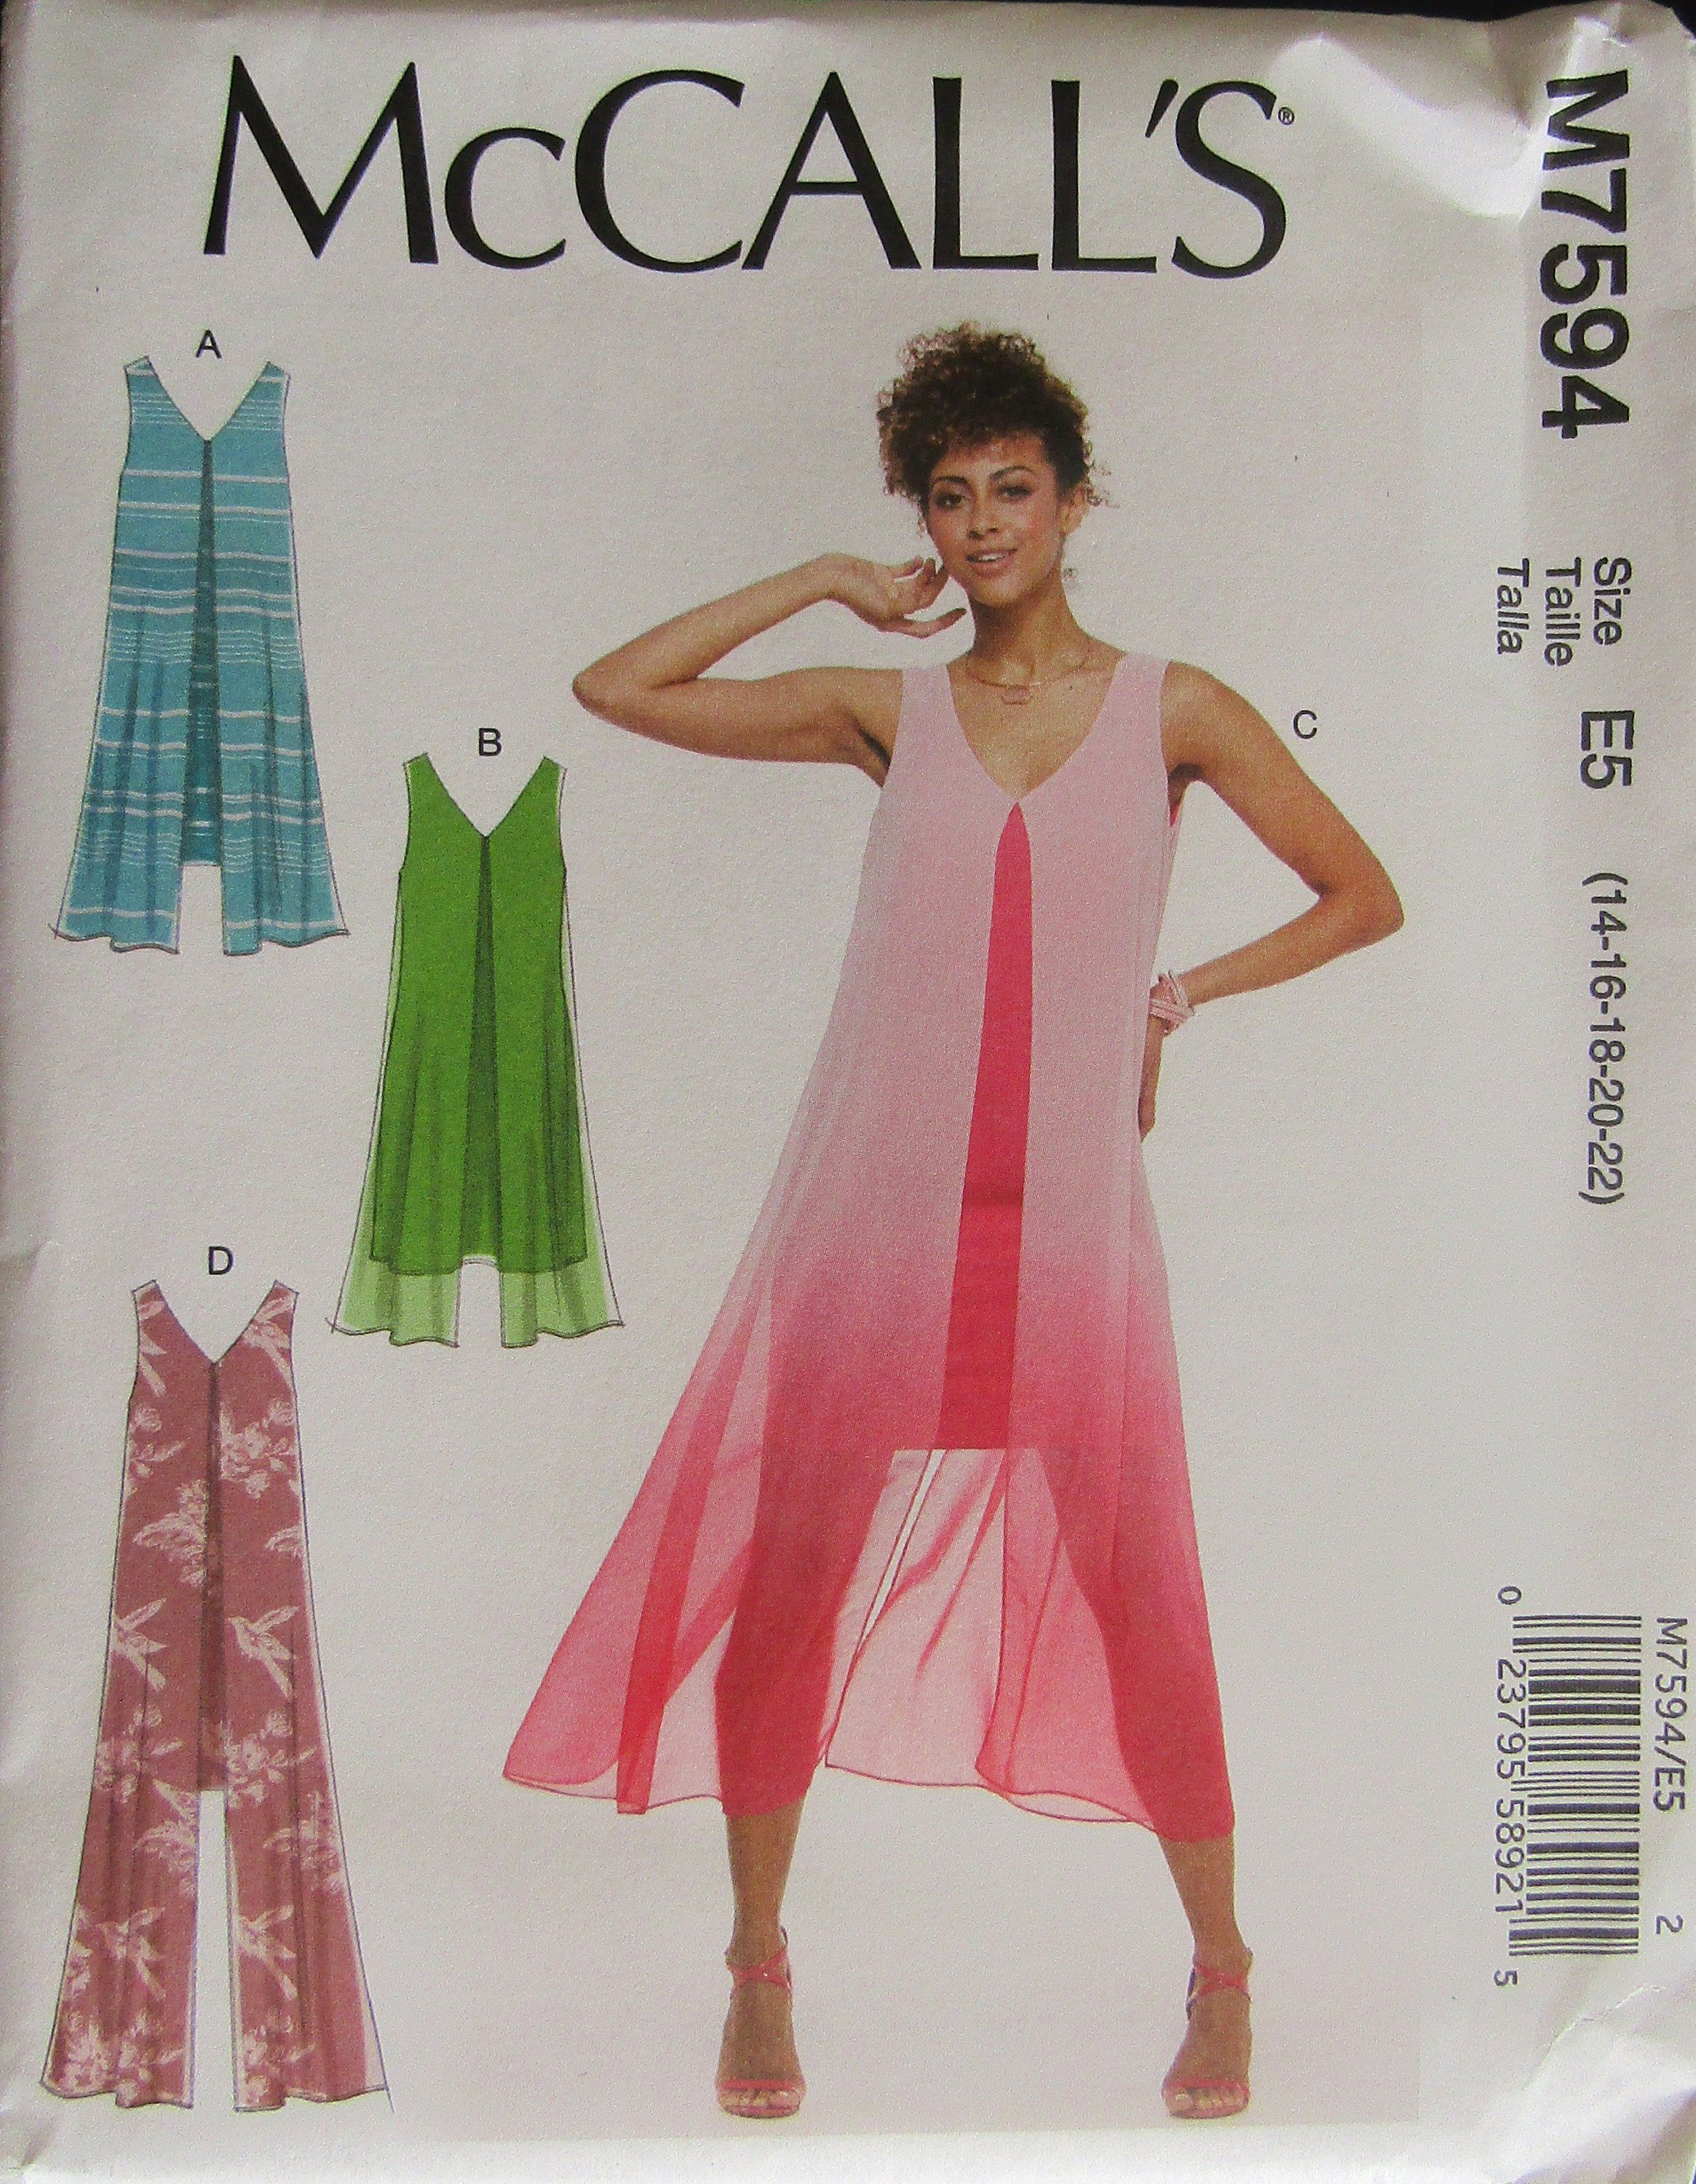 f1a7bee3b8d McCalls 7594 Misses V-Neck Sleeveless Pullover Dress Sewing Pattern Uncut  by SimpsonDesignsStudio on Etsy